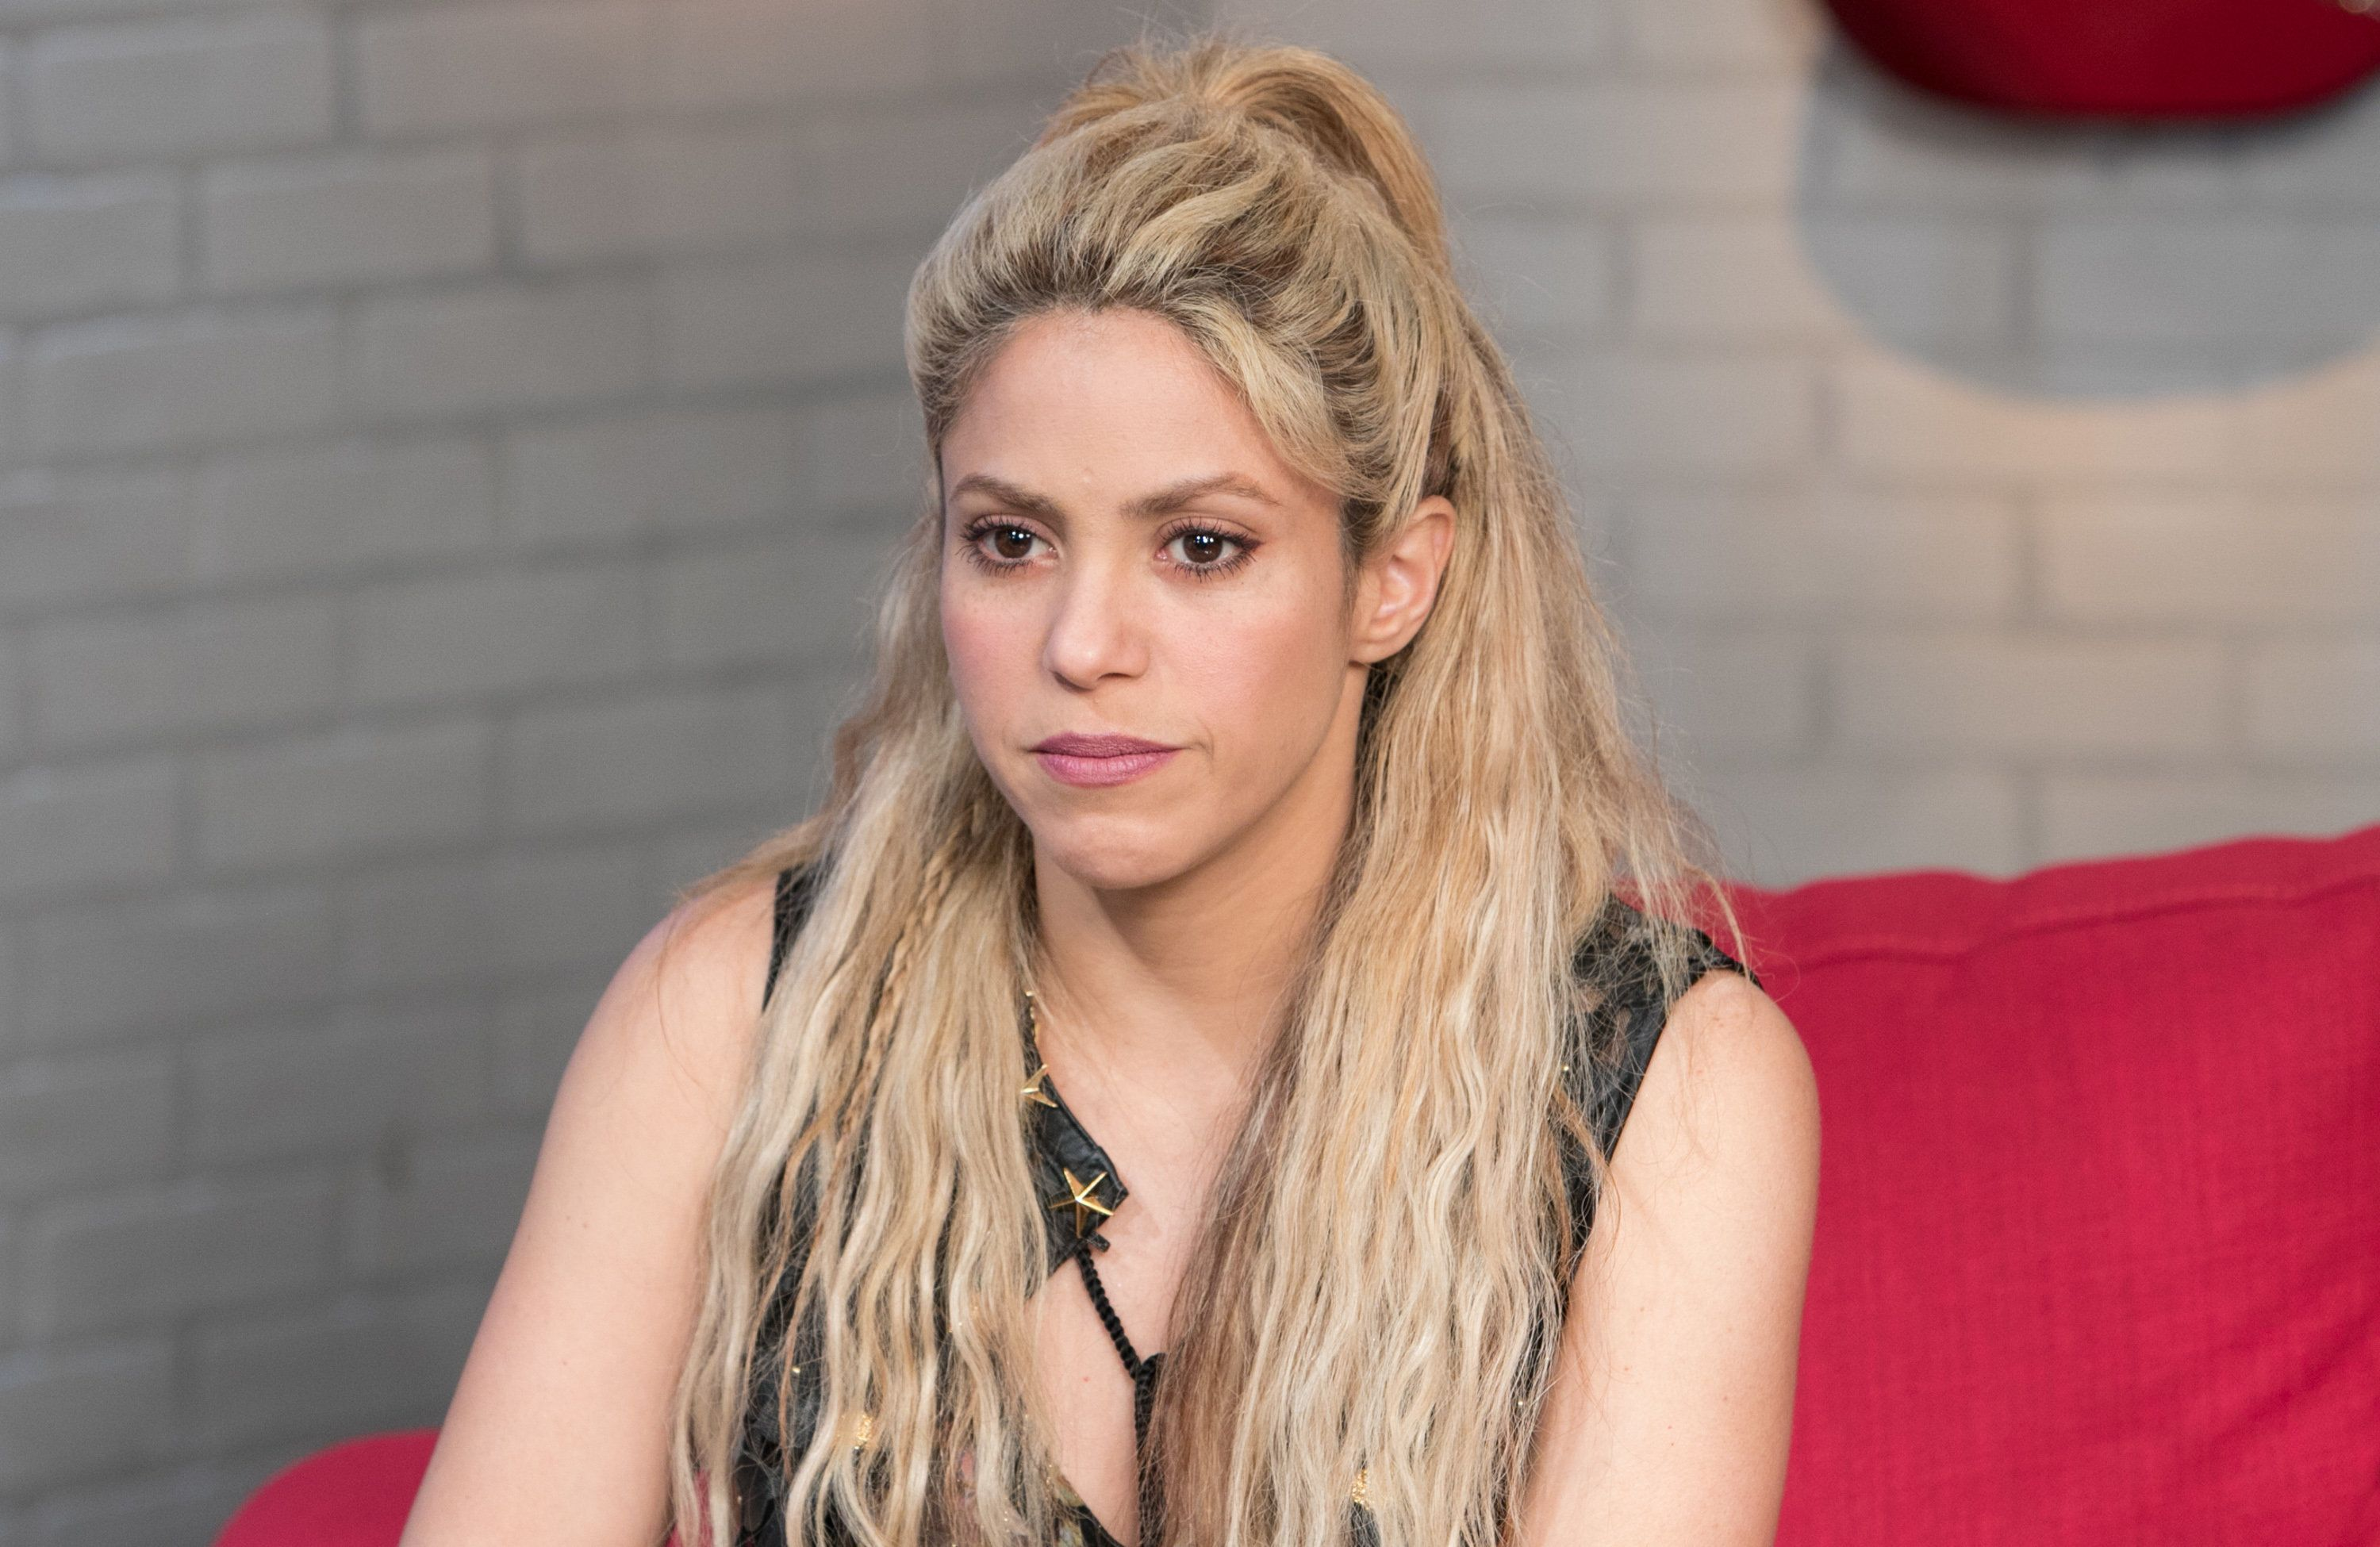 MIAMI, FL - MAY 26:  Shakira visits SBS Studio to promote her latest album, ÒEl Dorado at SBS Studios on May 26, 2017 in Miami, Florida.  (Photo by John Parra/Getty Images)